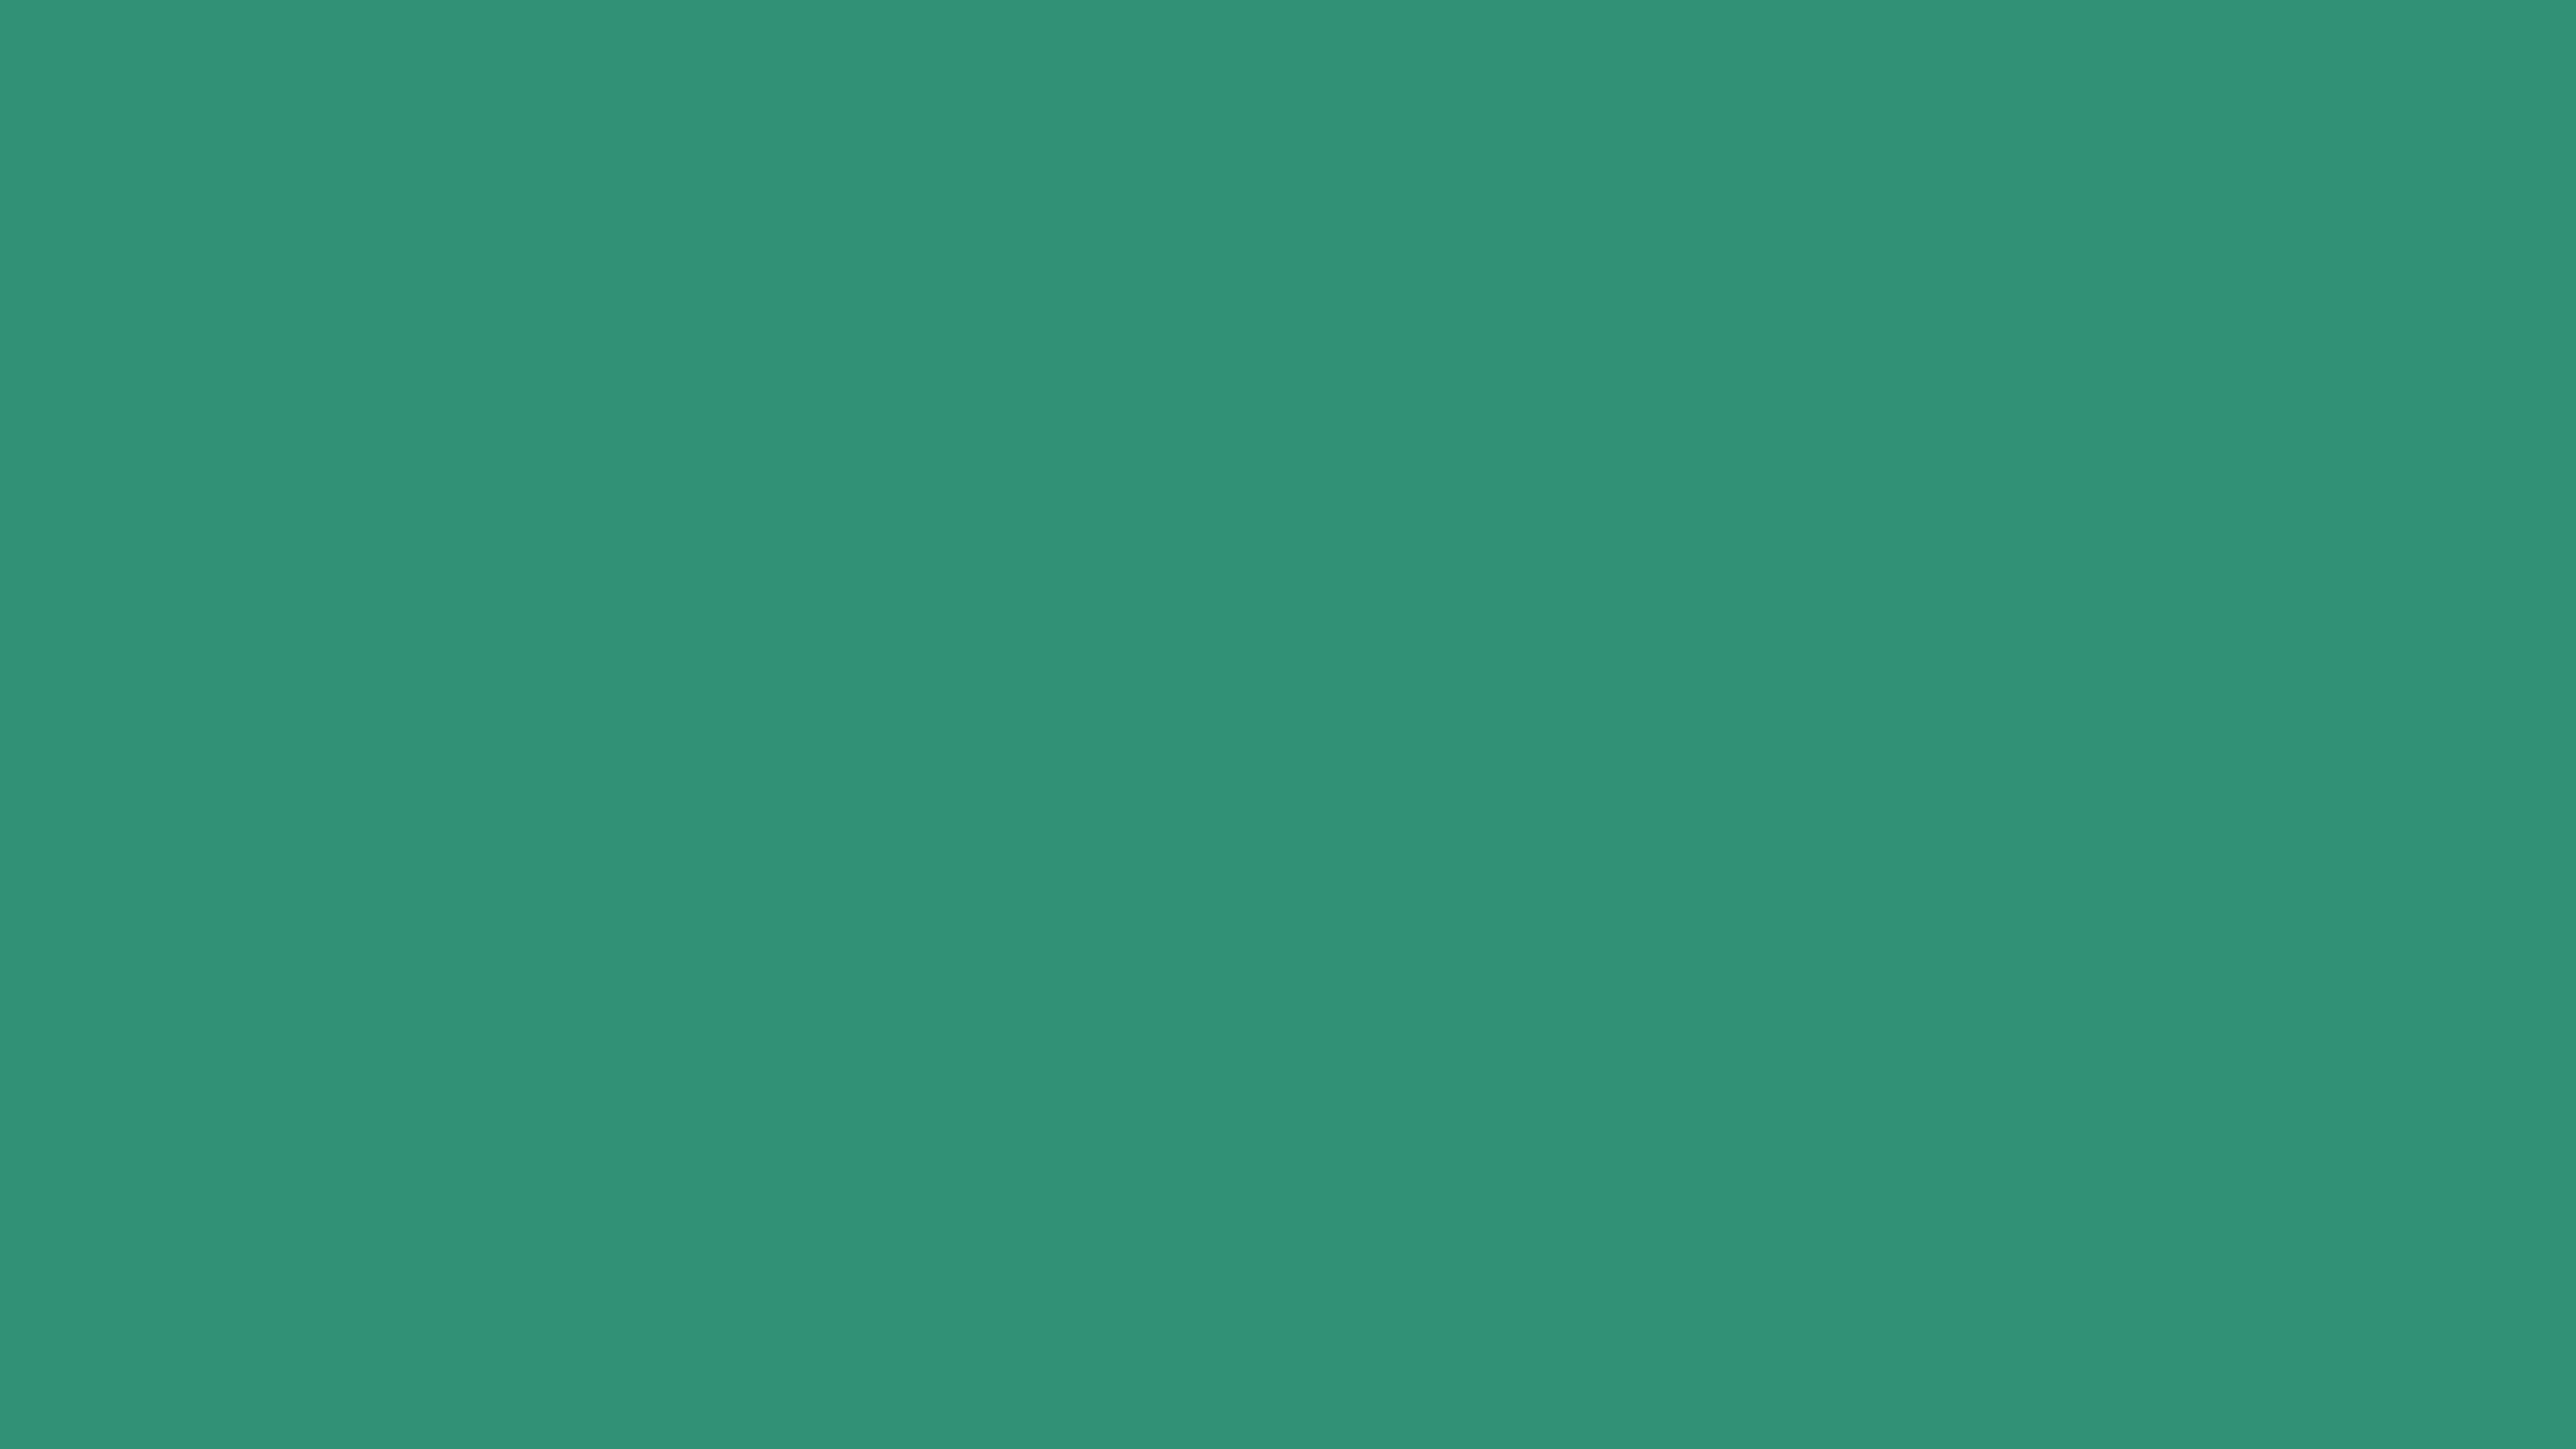 7680x4320 Illuminating Emerald Solid Color Background